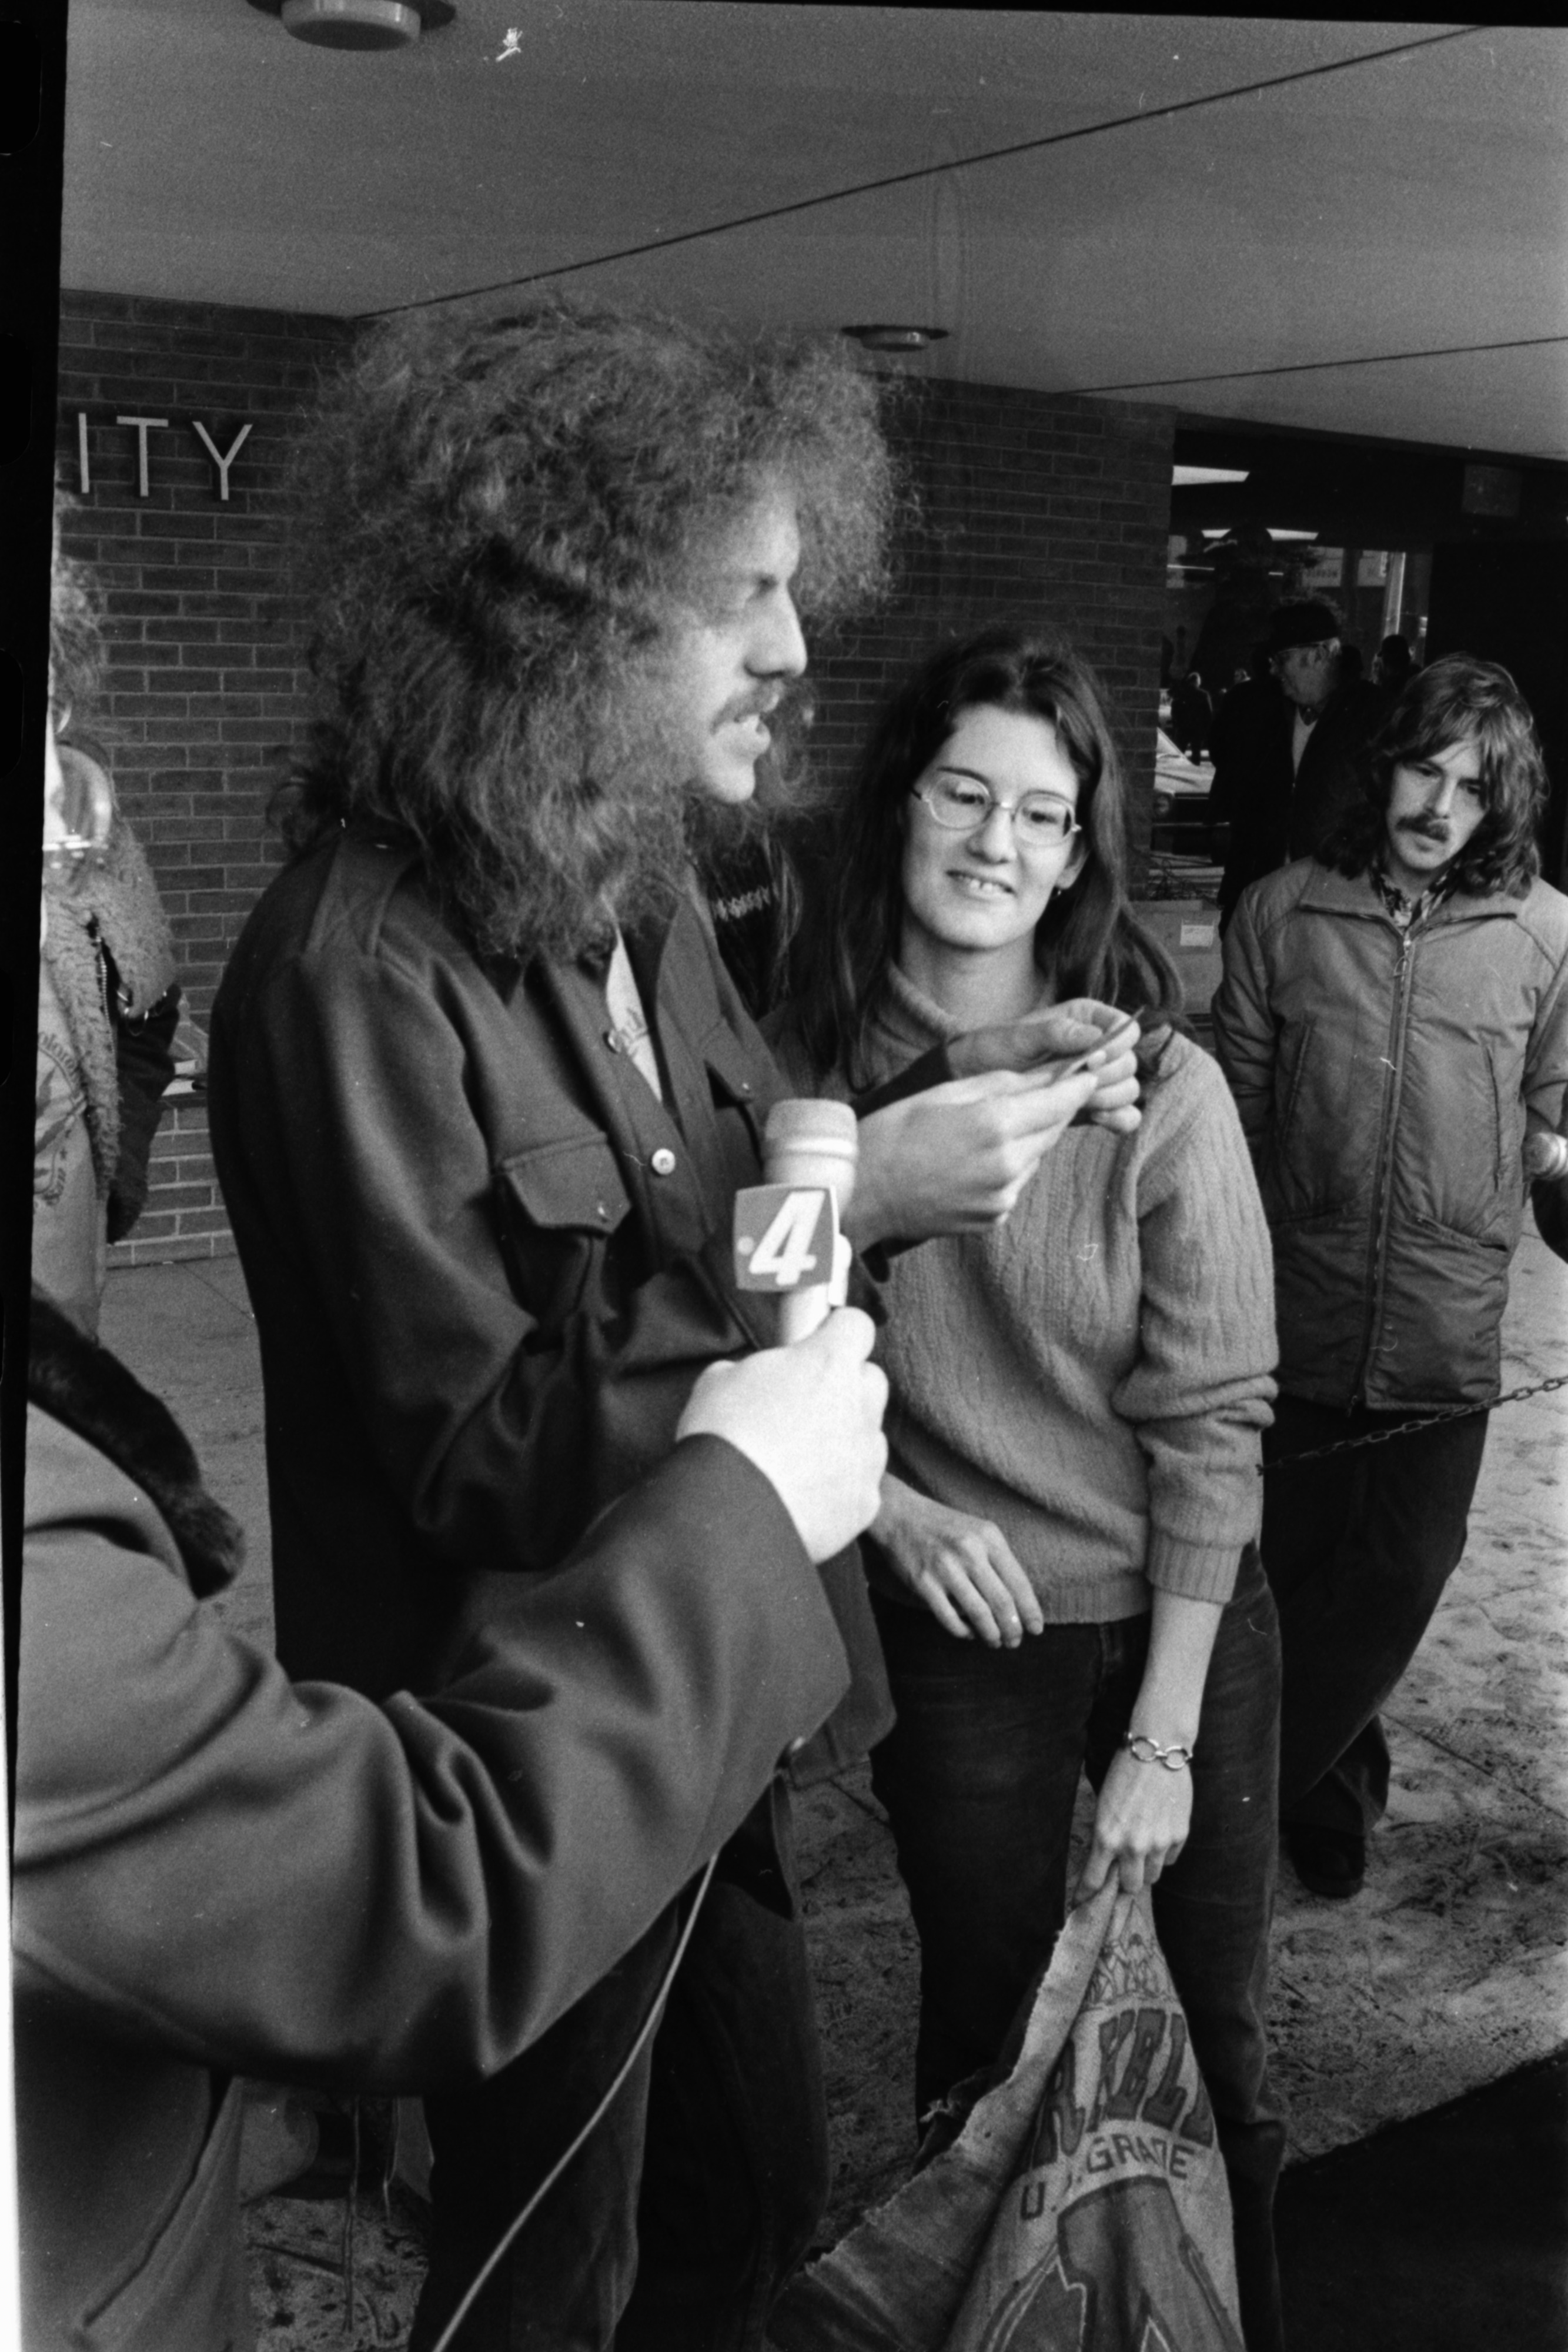 David Fenton Reads Statement at Drawing for Free Pot Giveaway, Ann Arbor City Hall, January 1975 image